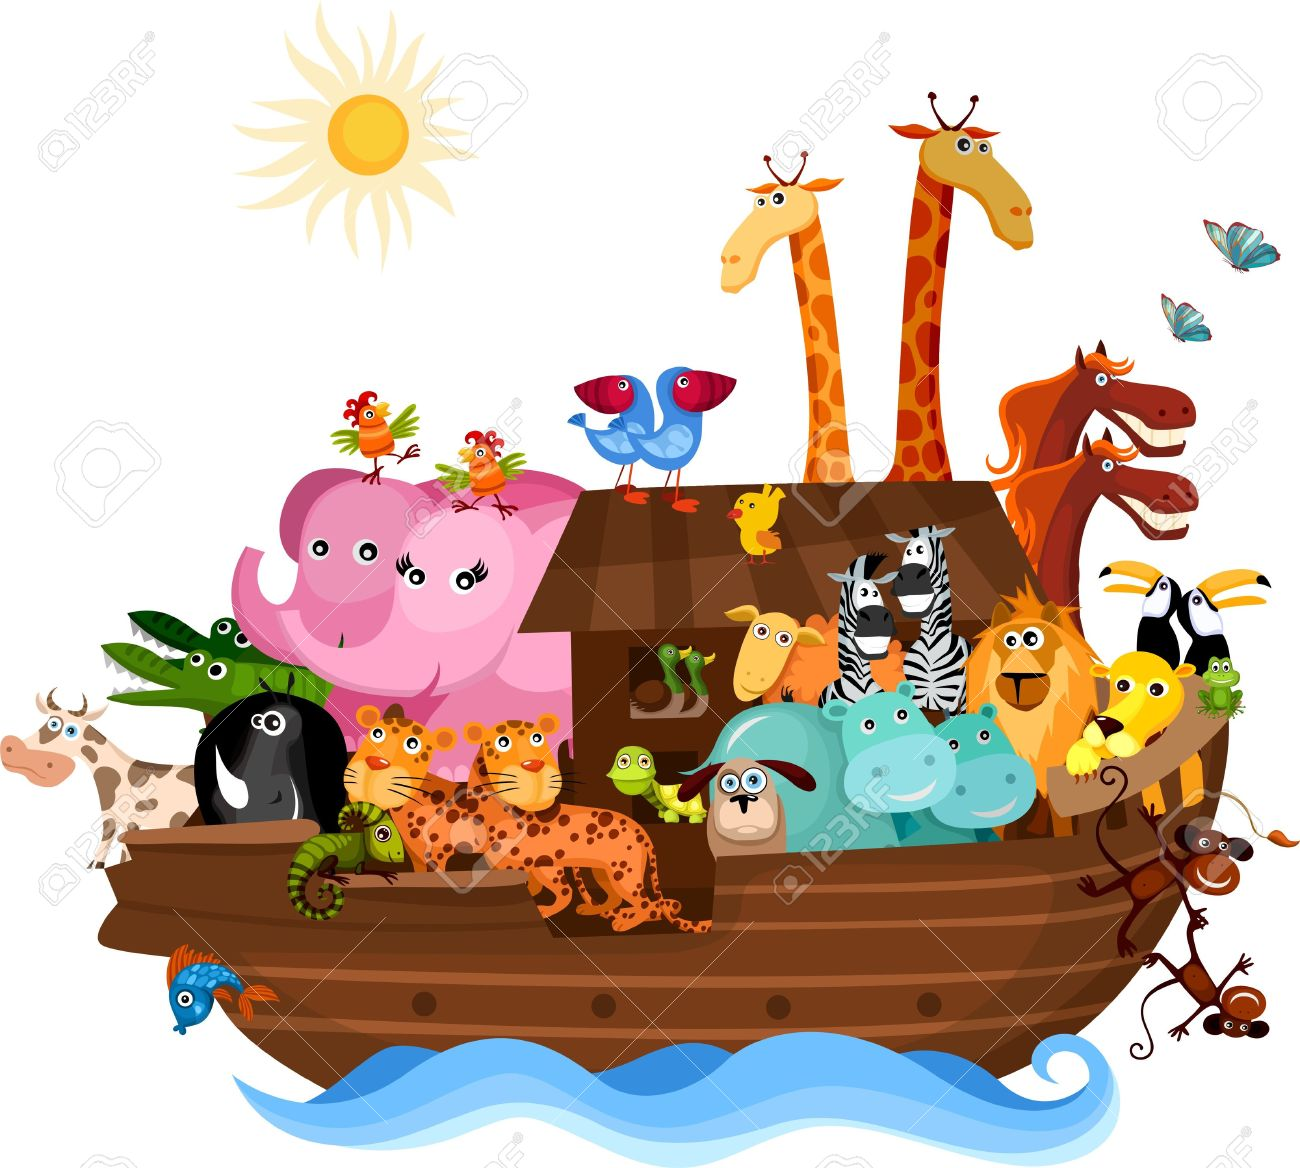 Noah's Ark Royalty Free Cliparts, Vectors, And Stock Illustration.